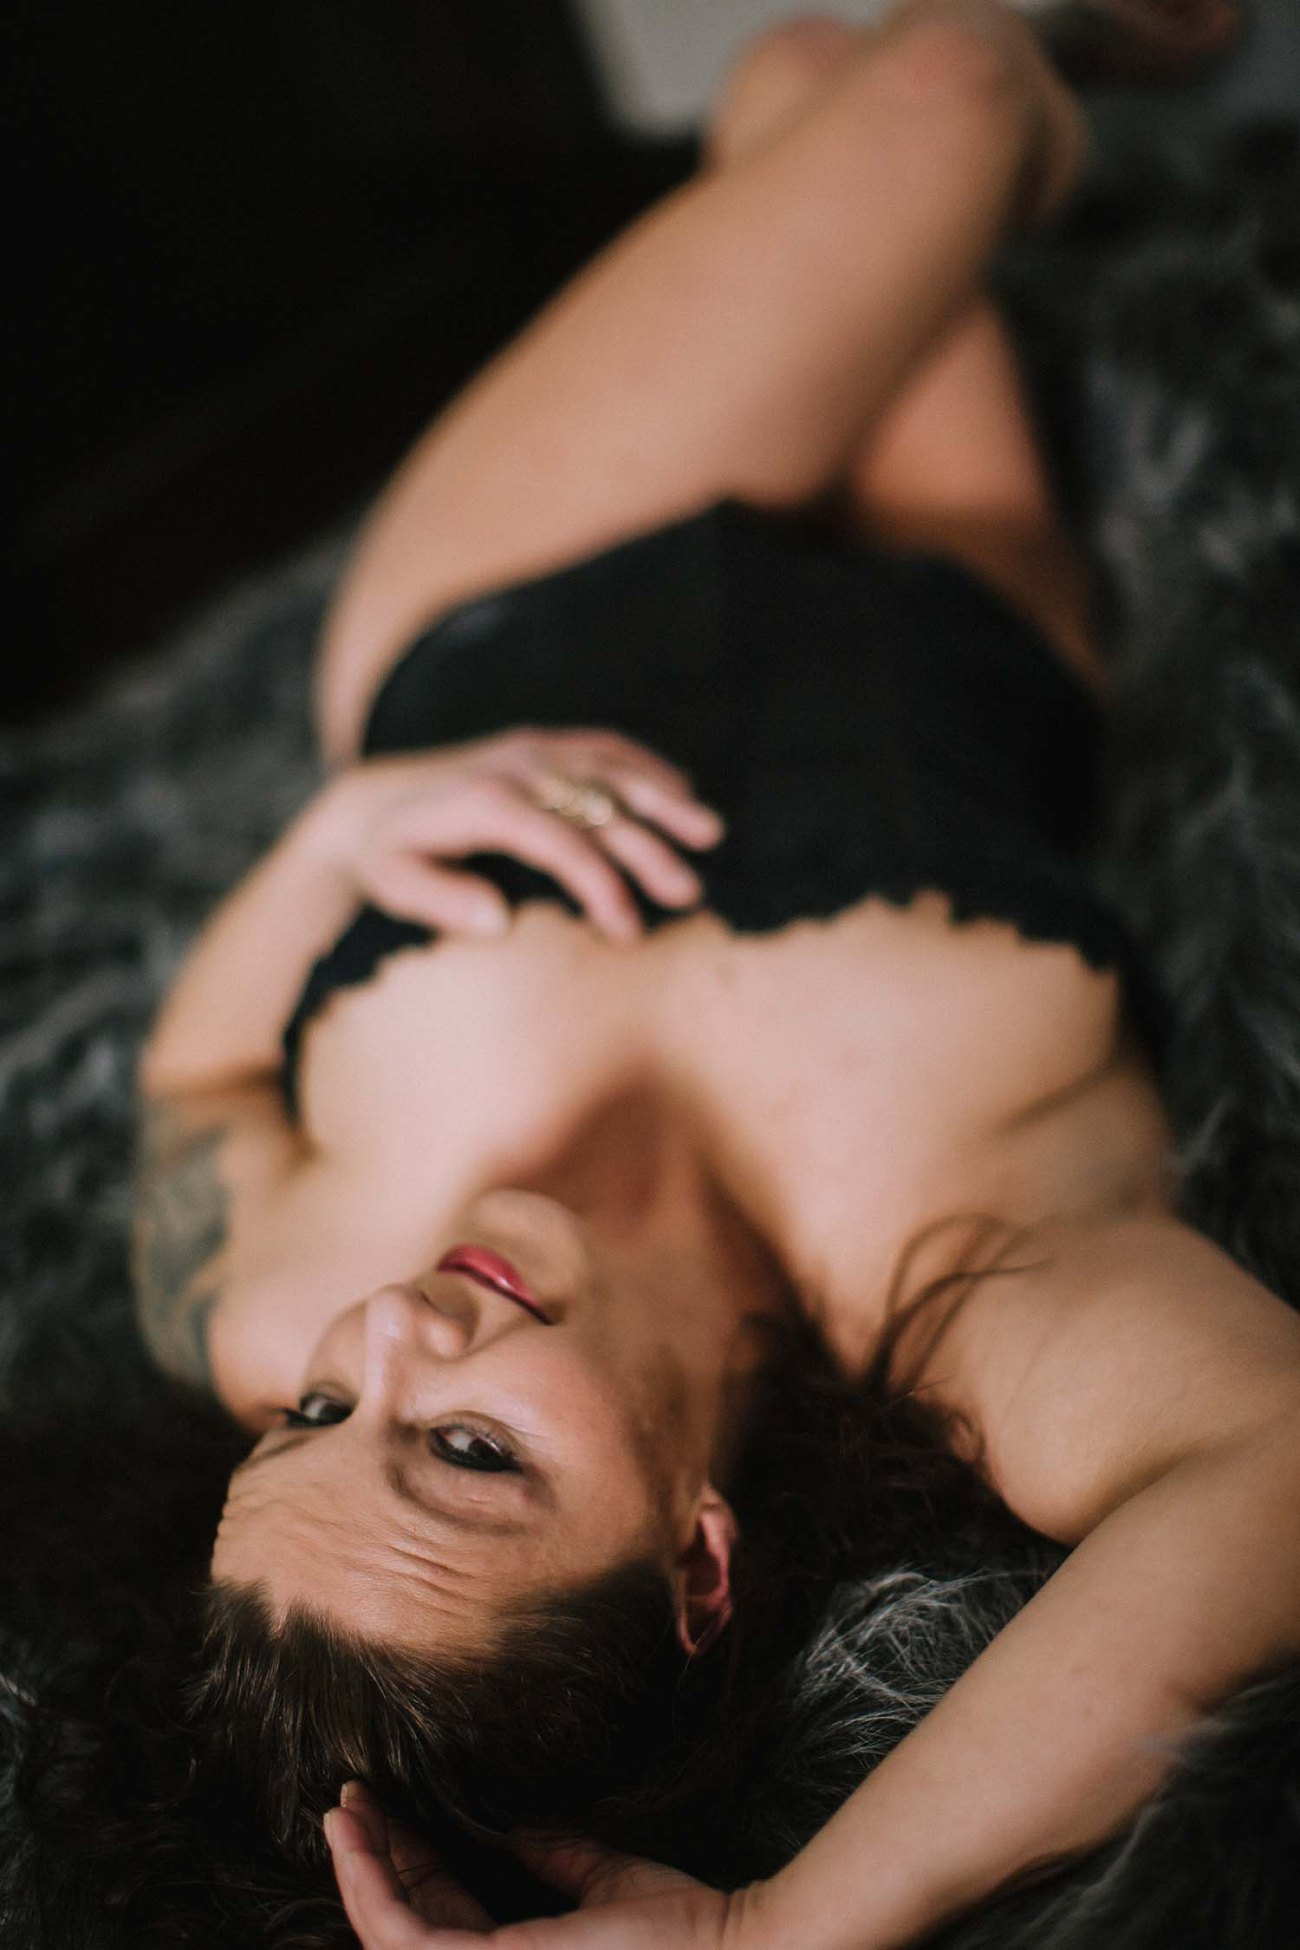 Jamie sensual adult sophisticated, portrait natural light curvy full figured lingerie Twin Cities Boudoir Photography Intimate portraits